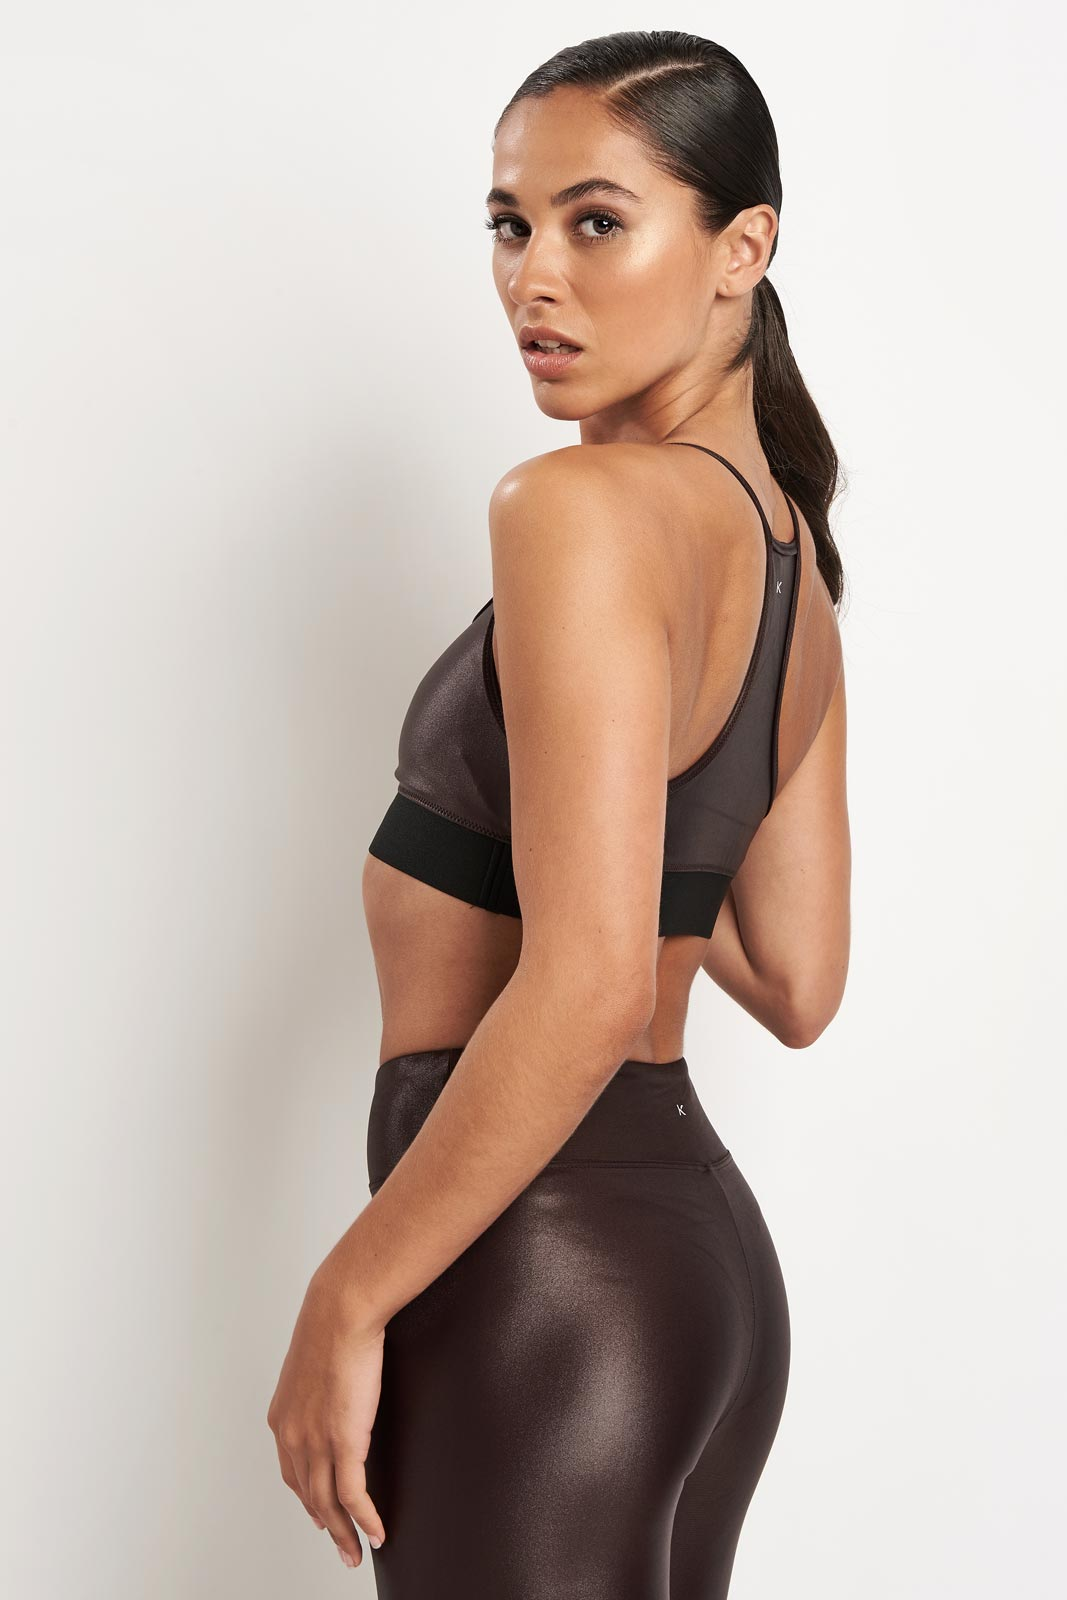 Koral Sweeper Versatility Bra - Choc image 2 - The Sports Edit